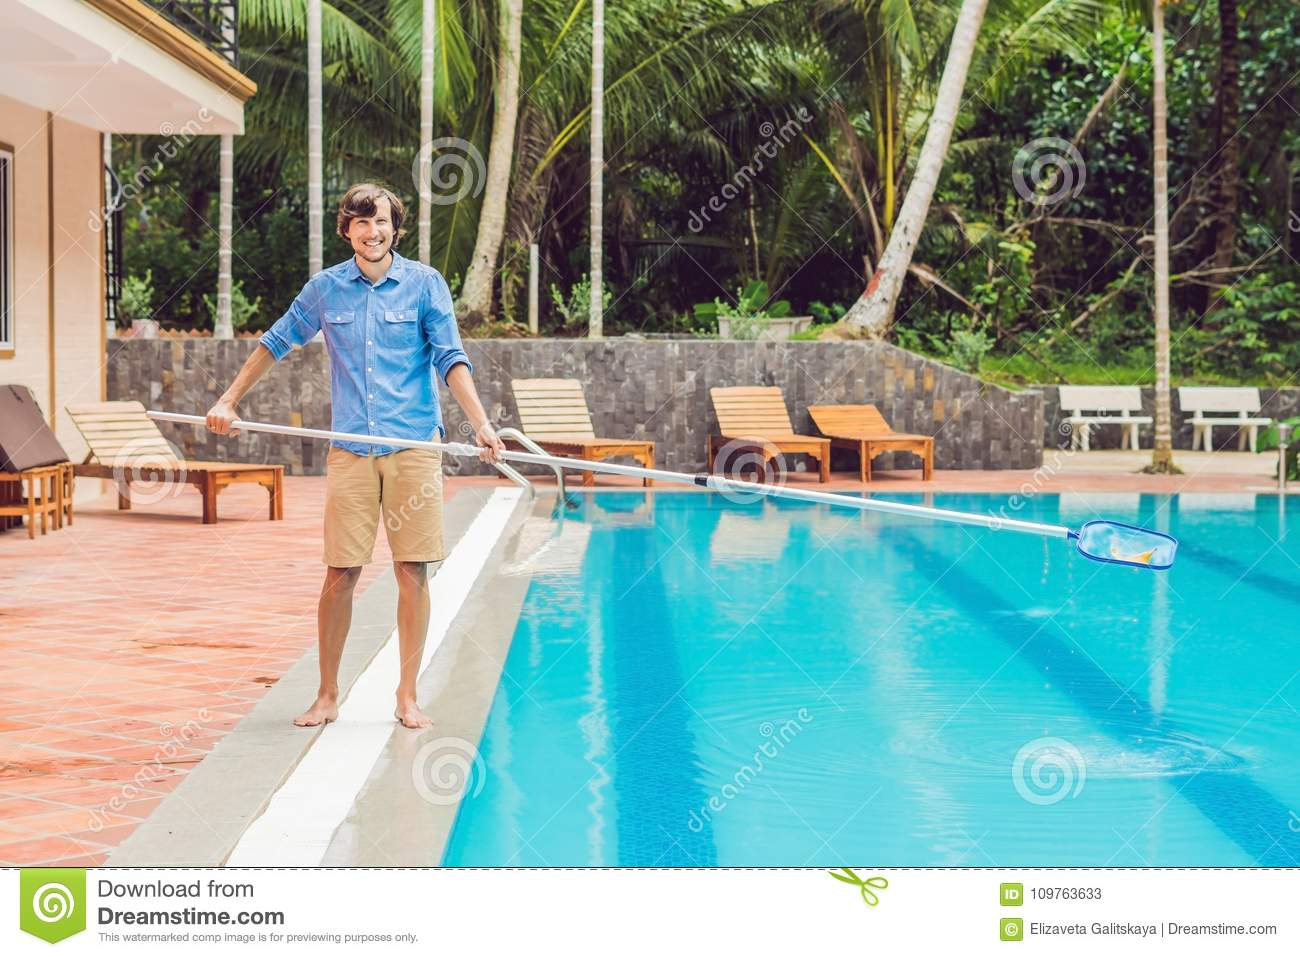 Cleaner Of The Swimming Pool Man In A Blue Shirt With Cleaning Equipment For Swimming Pools